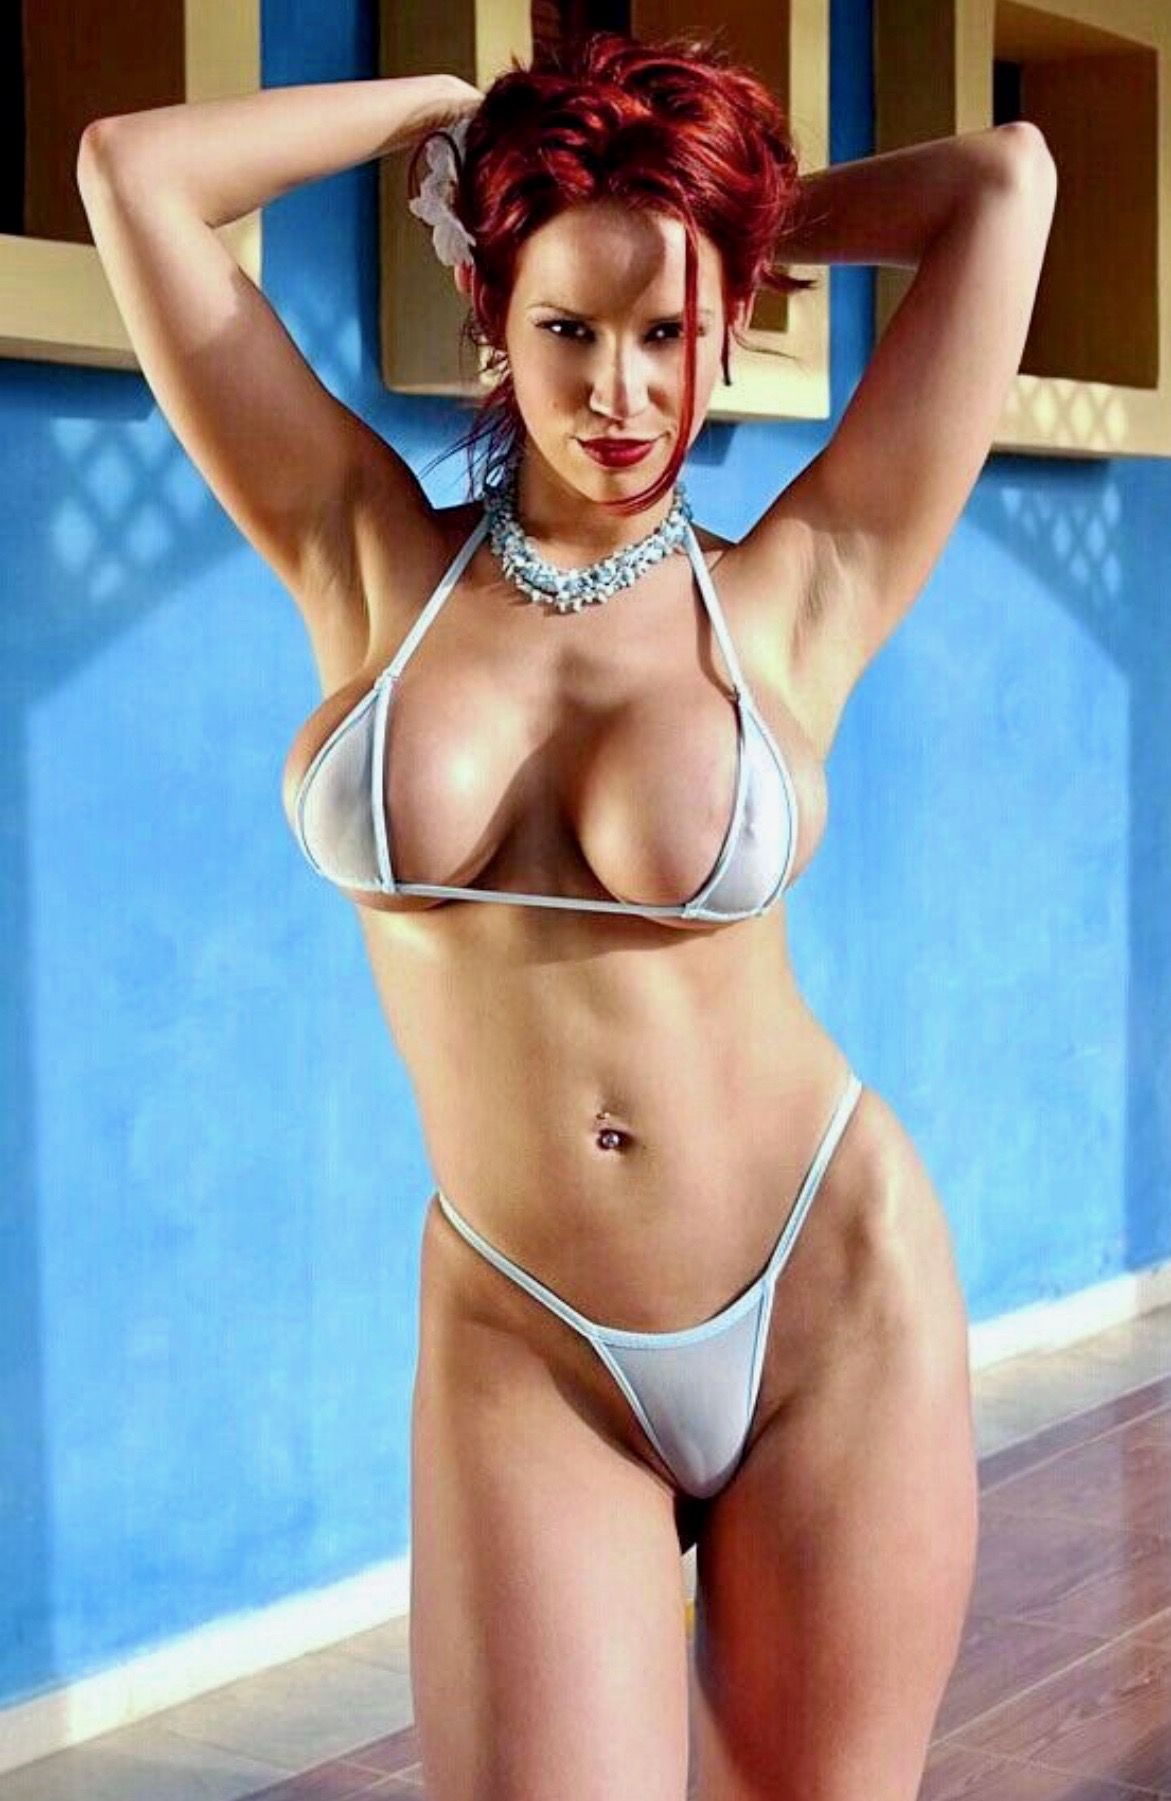 Pin On Redheads